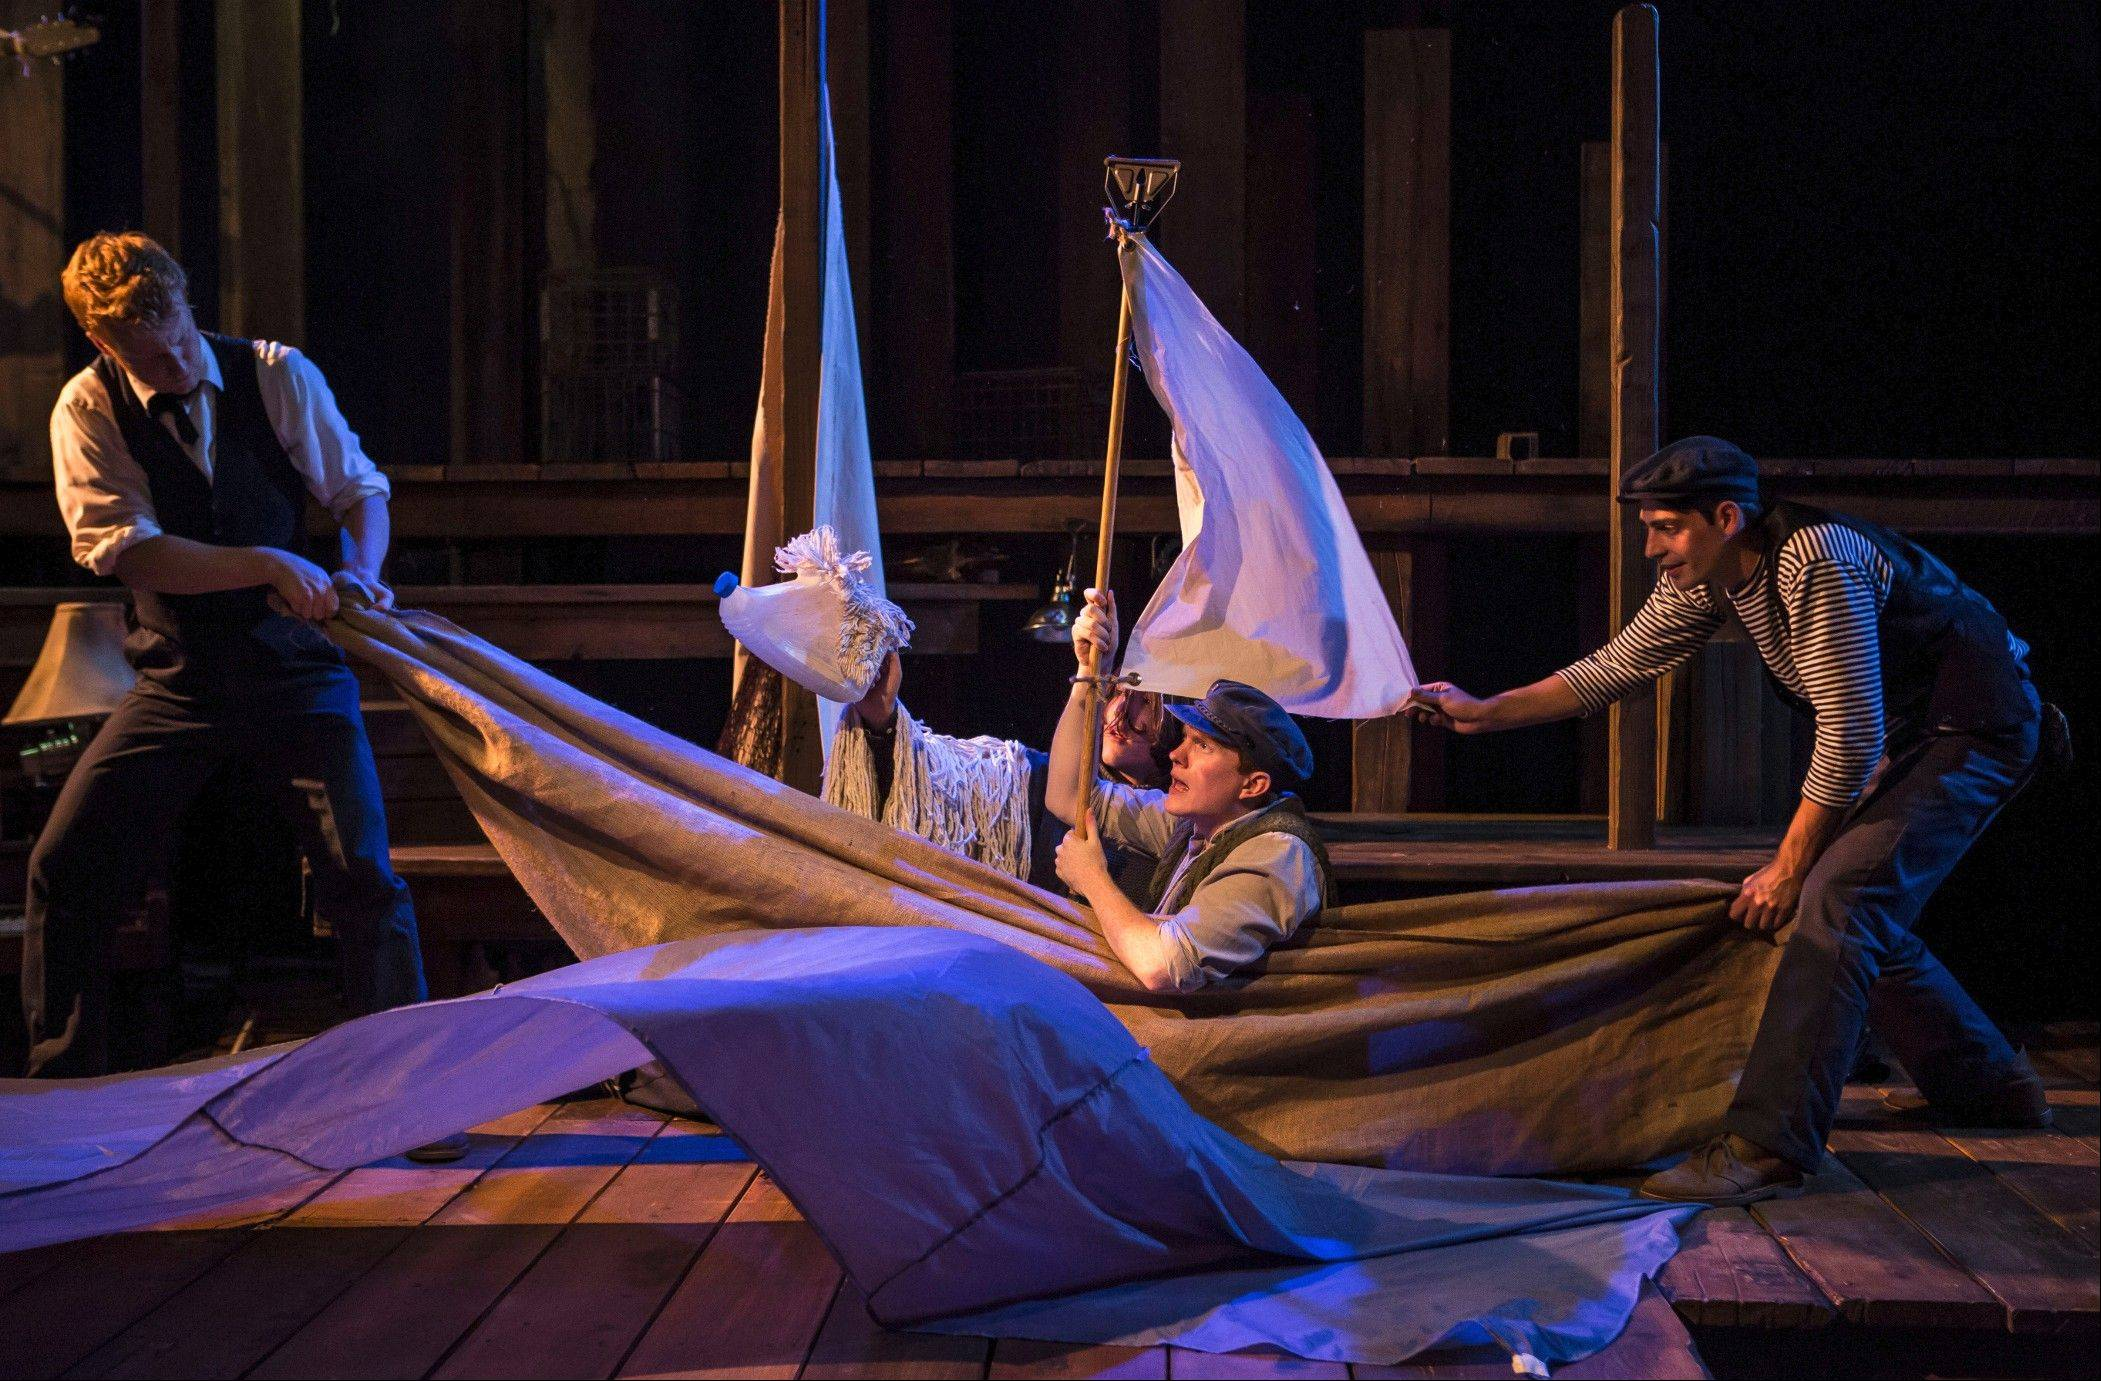 "courtesy of Liz LaurenThe Old Man (Ryan Melia), center, and his canine companion sail to the end of the world to find the man's wife in PigPen Theatre Company's inventive ""The Old Man and the Old Moon,"" running through November at Writers Theatre in Glencoe."